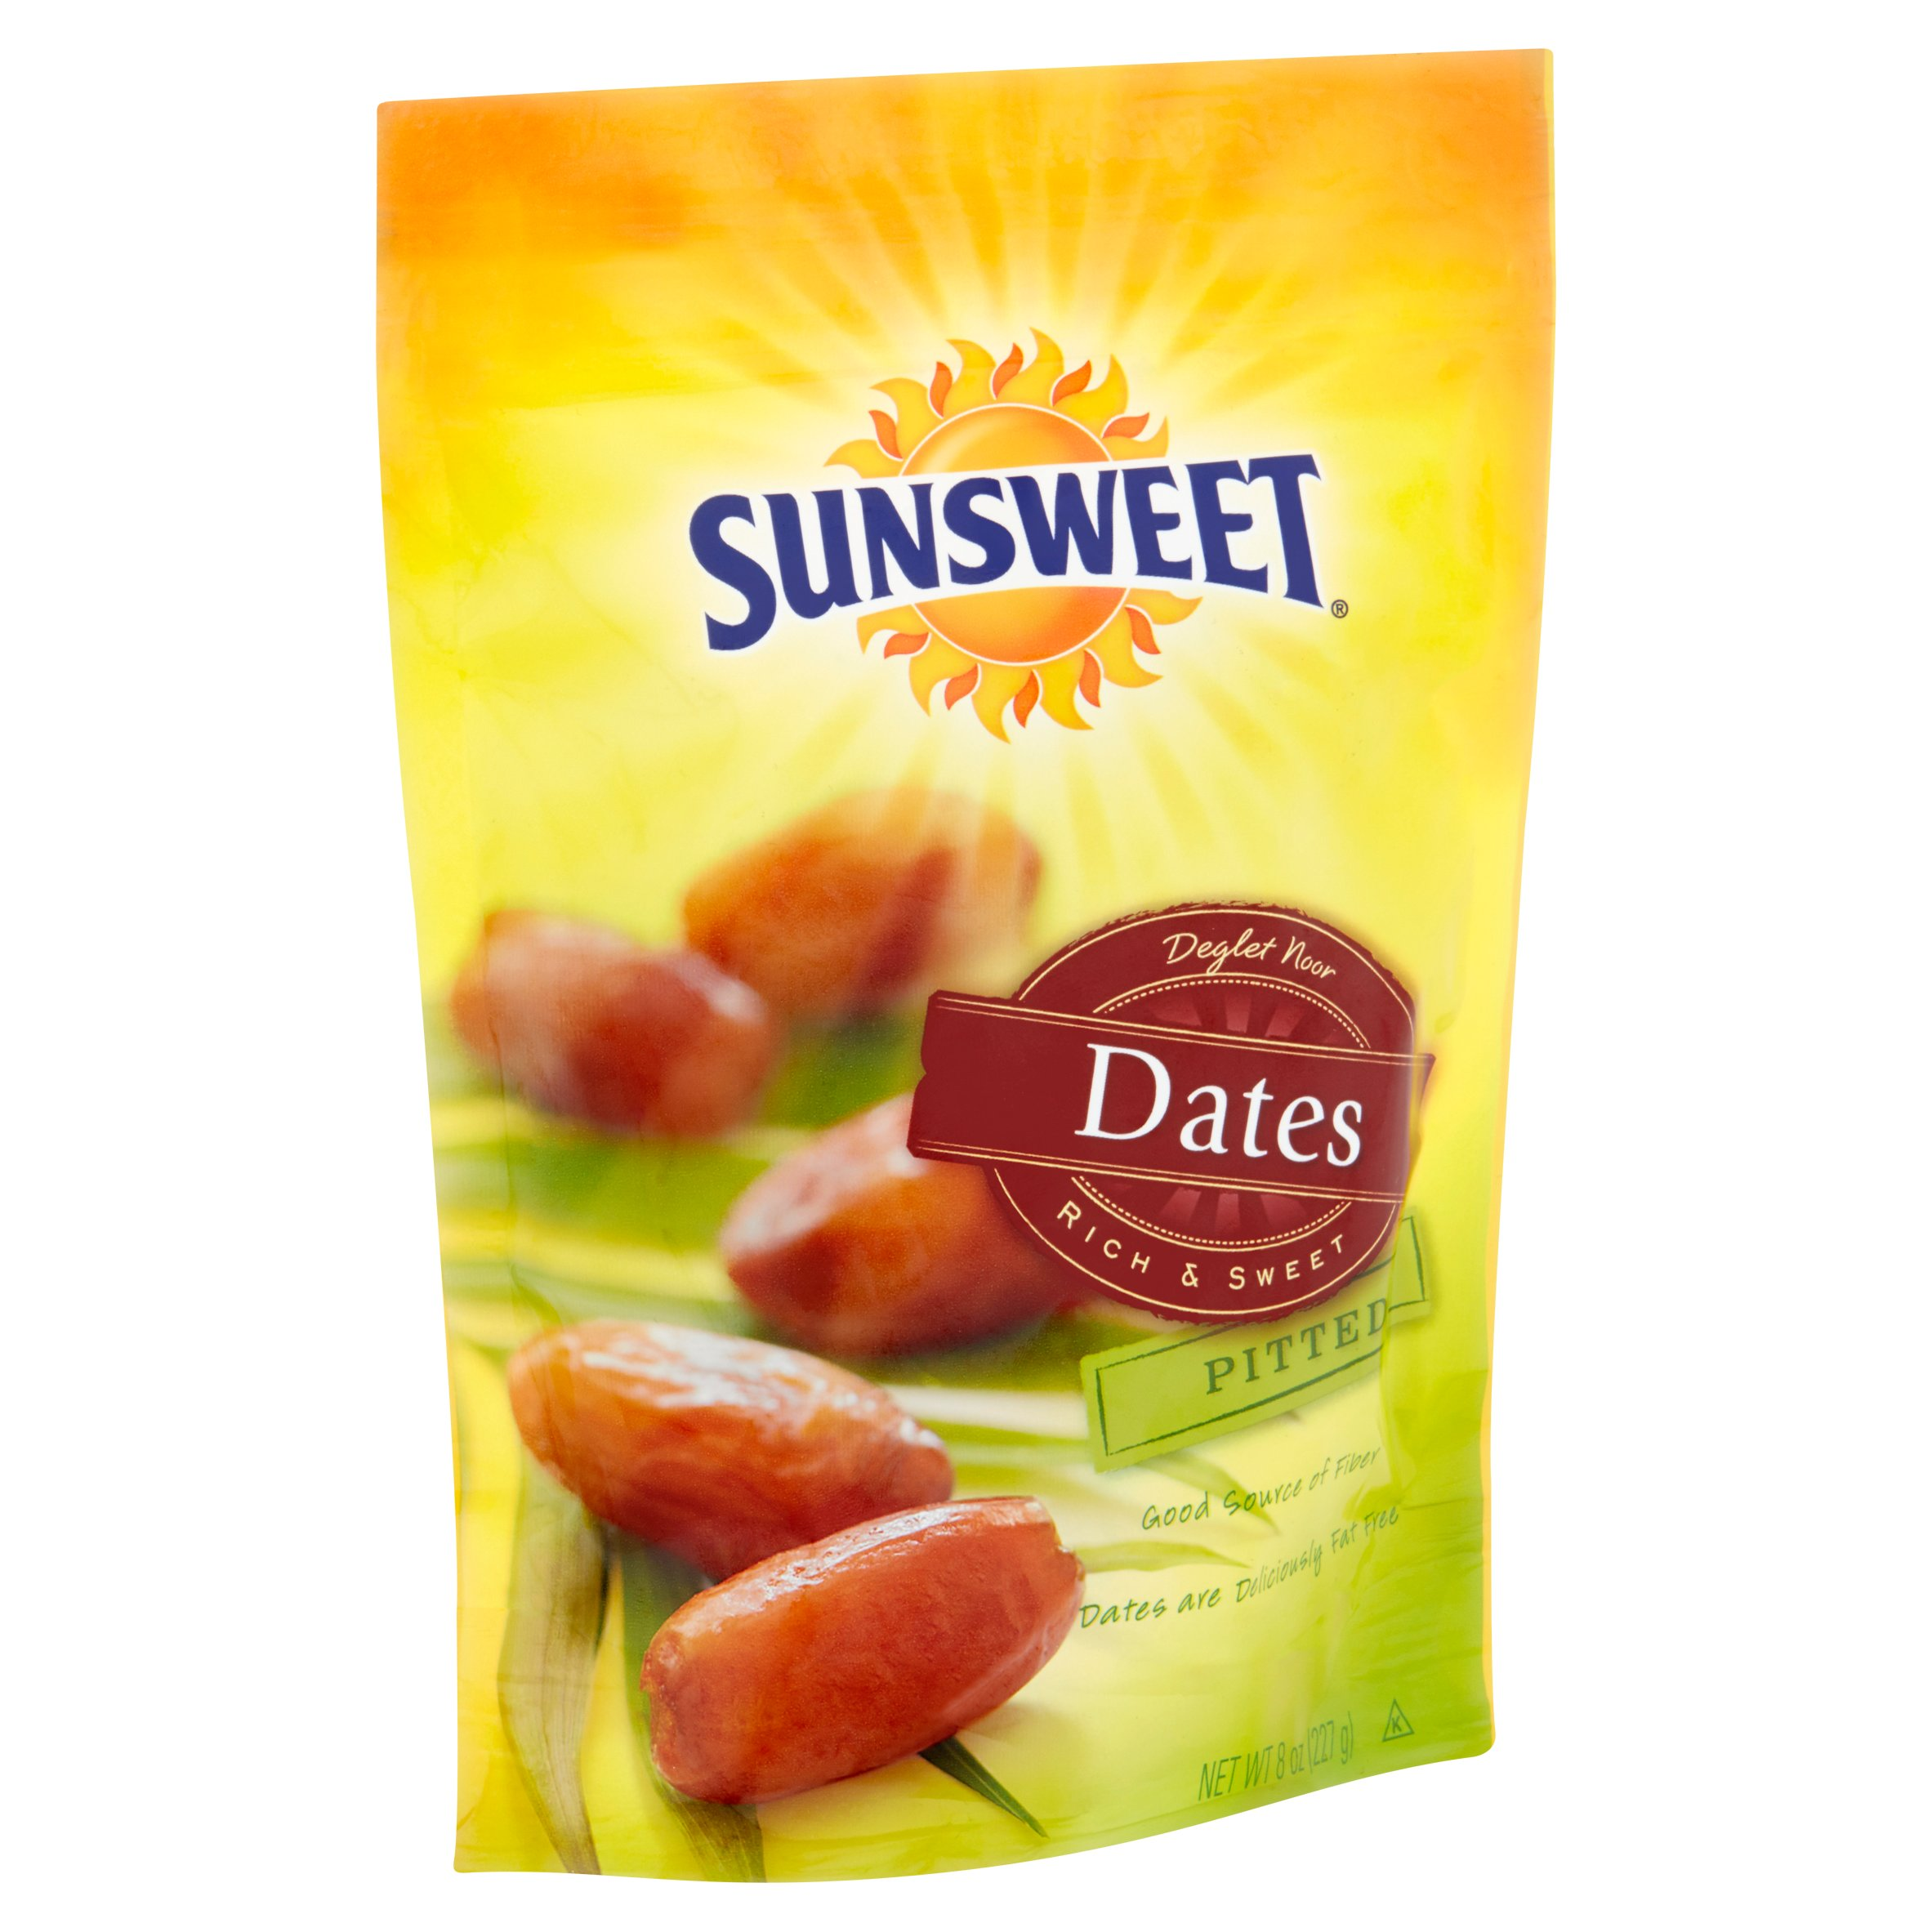 Sunsweet Rich and Sweet Pitted Dates 8 Oz Best Dried